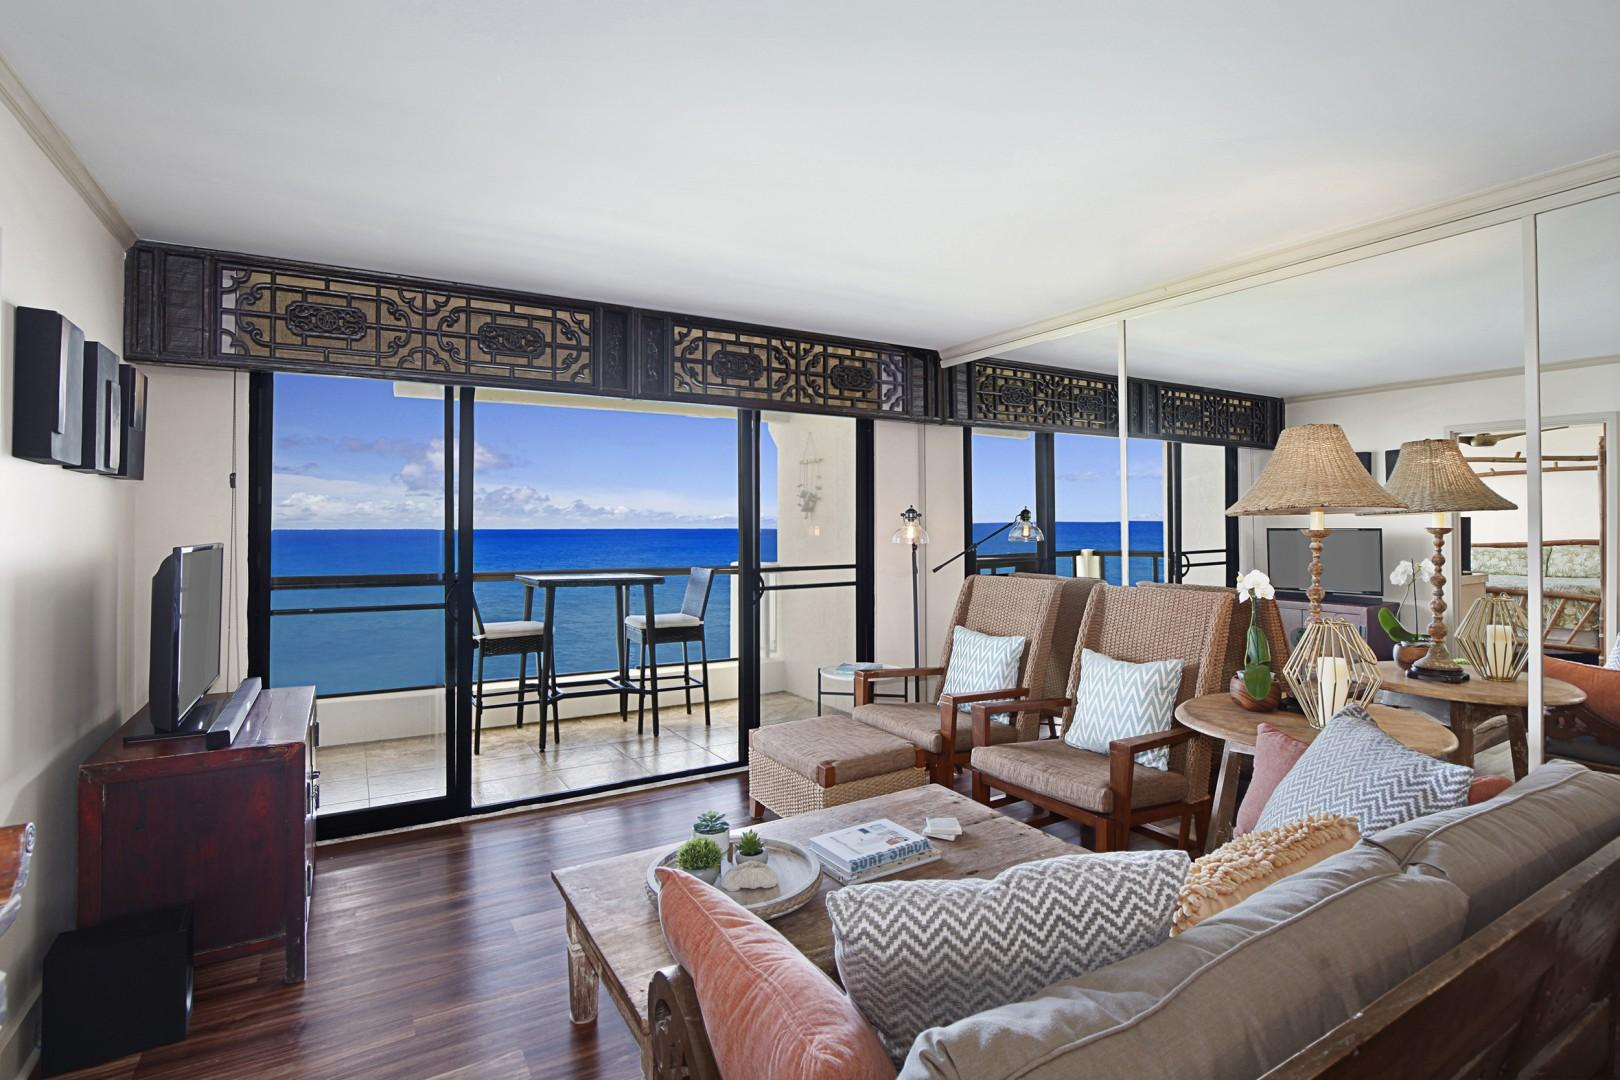 Living room with an ocean view